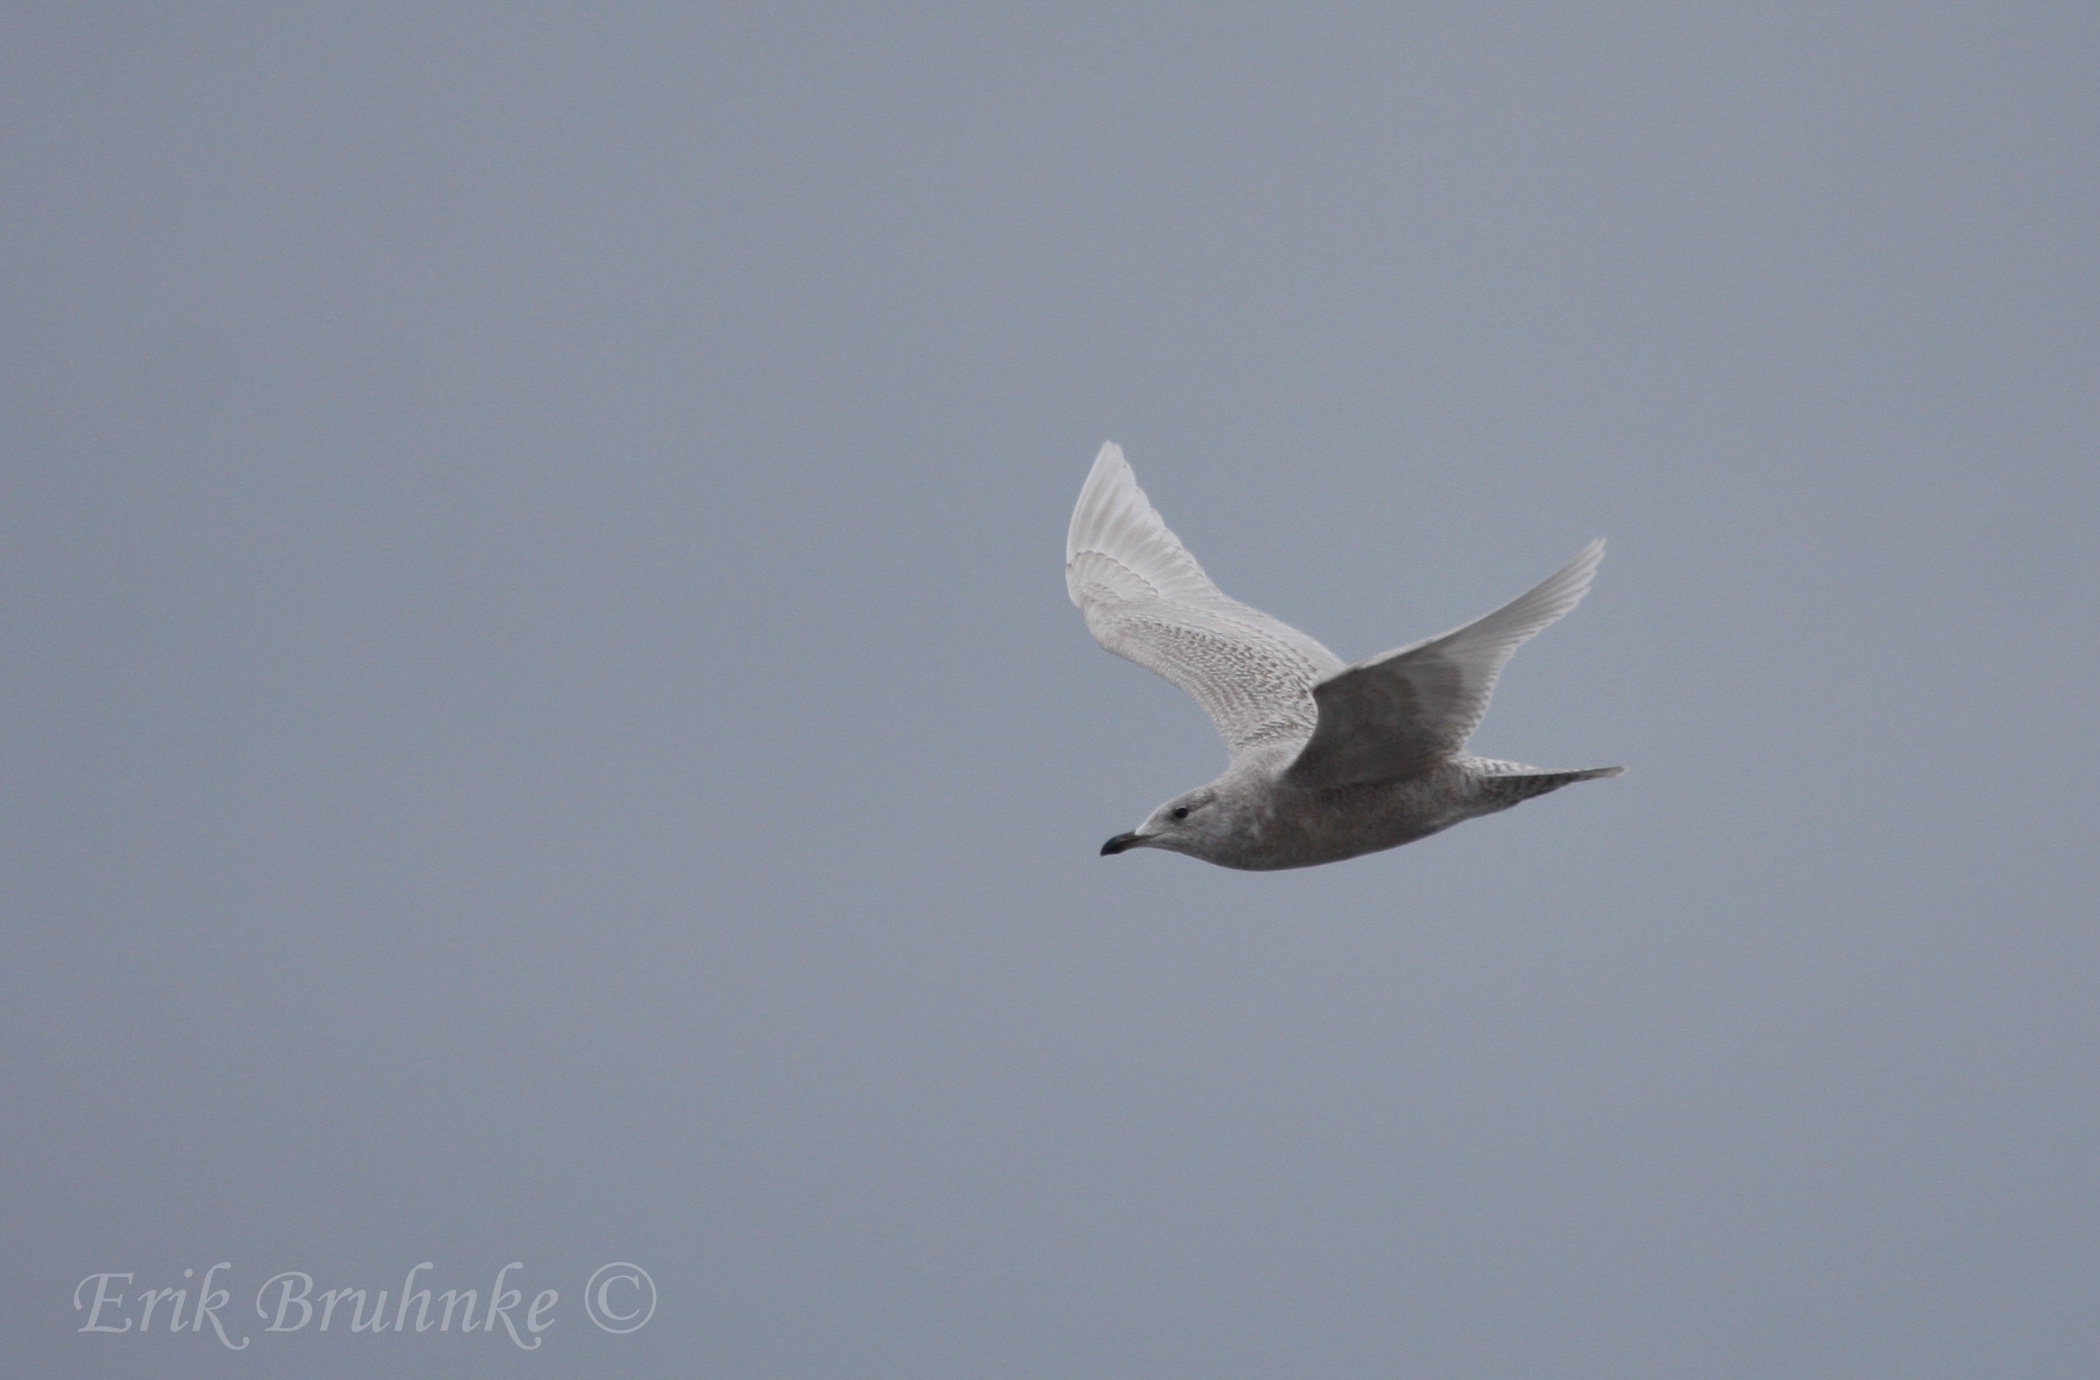 Iceland Gull.  Photo by Erik Bruhnke.